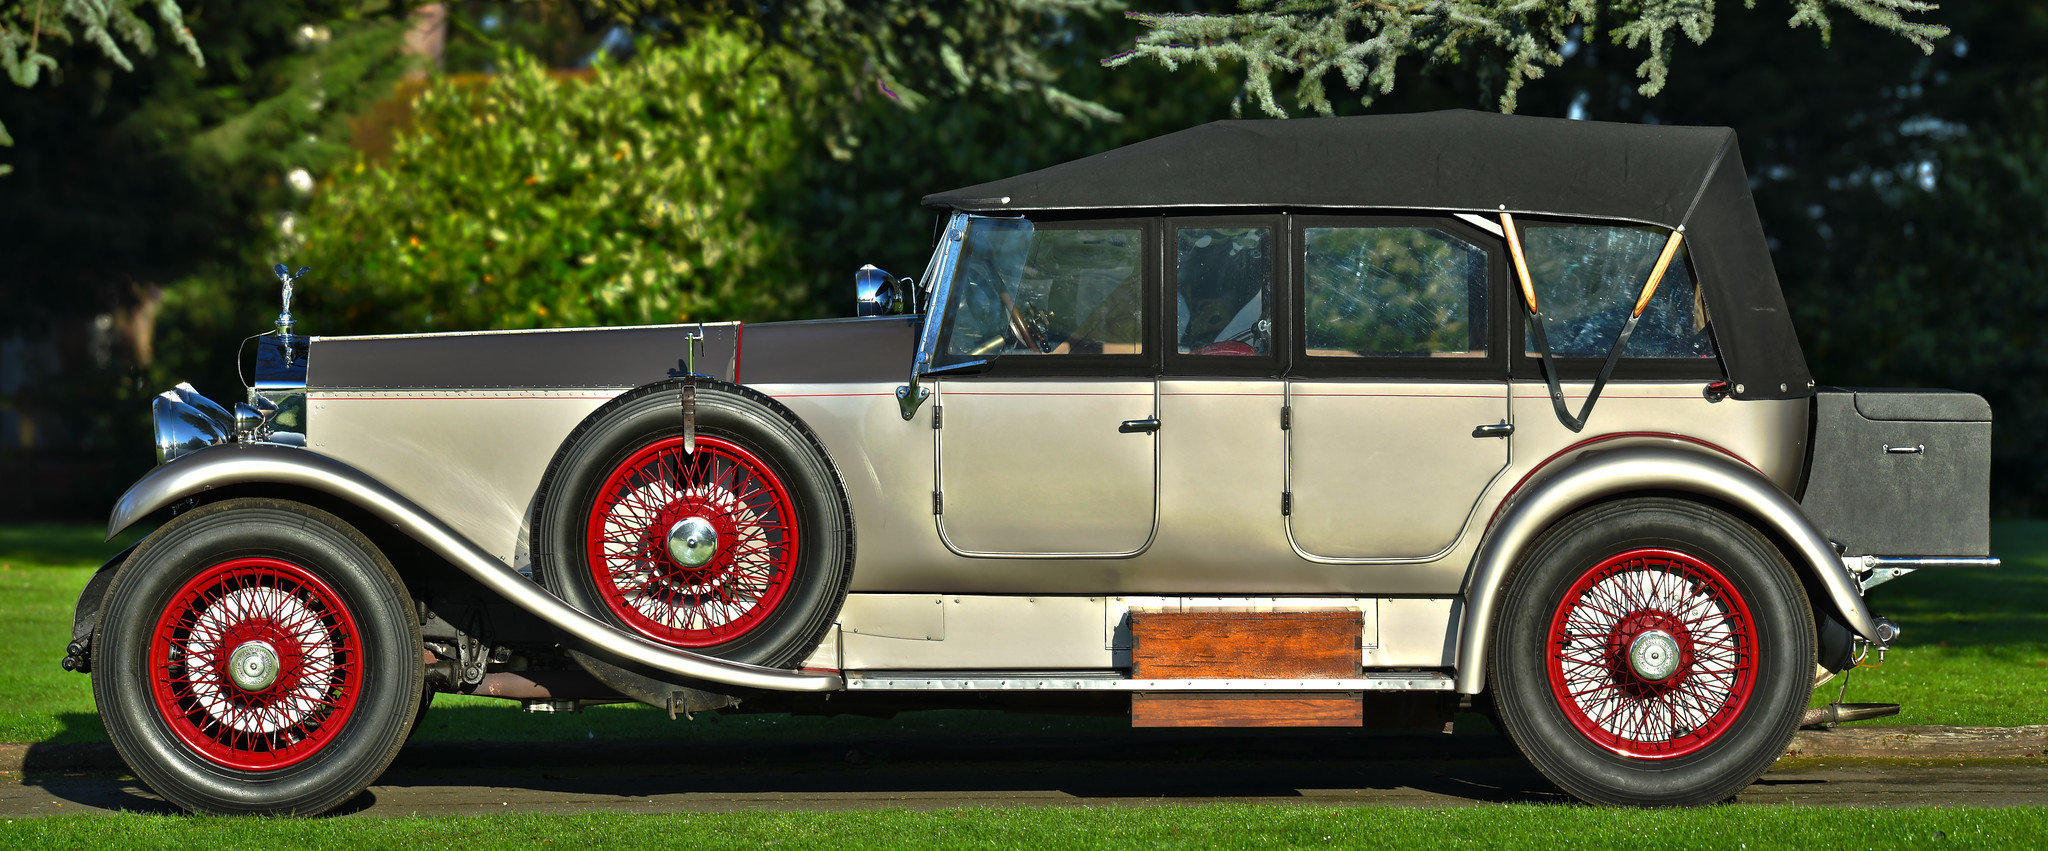 1927 Rolls Royce Phantom 1 Dual Cowl Tourer SOLD (picture 10 of 10)